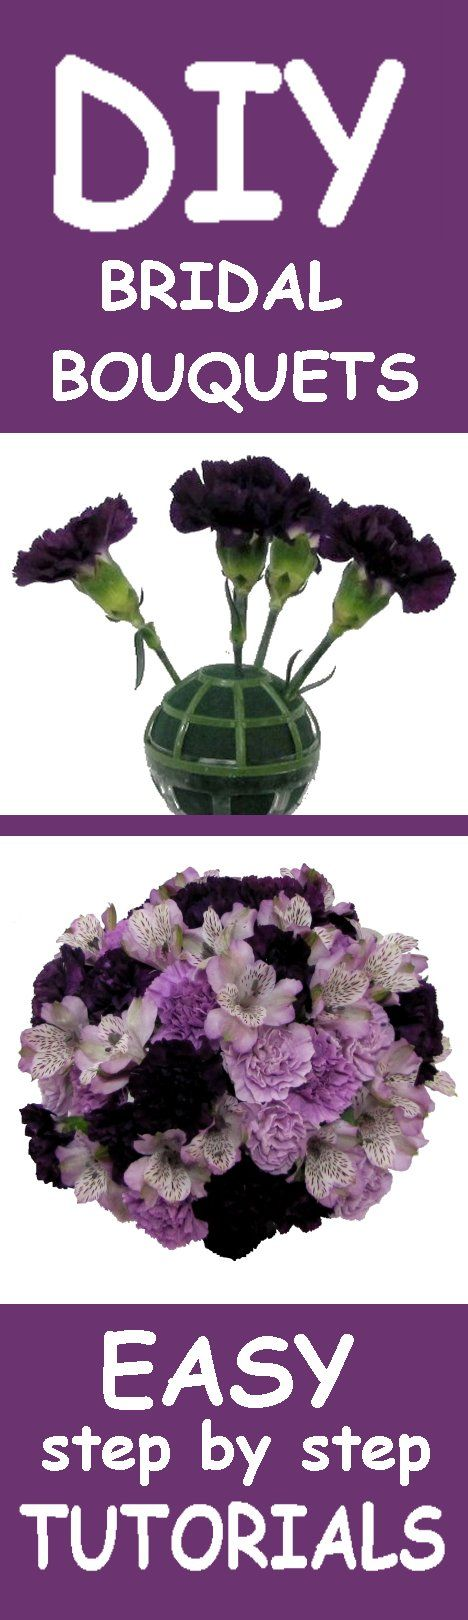 127 Best How To Make A Wedding Bouquet Images On Pinterest